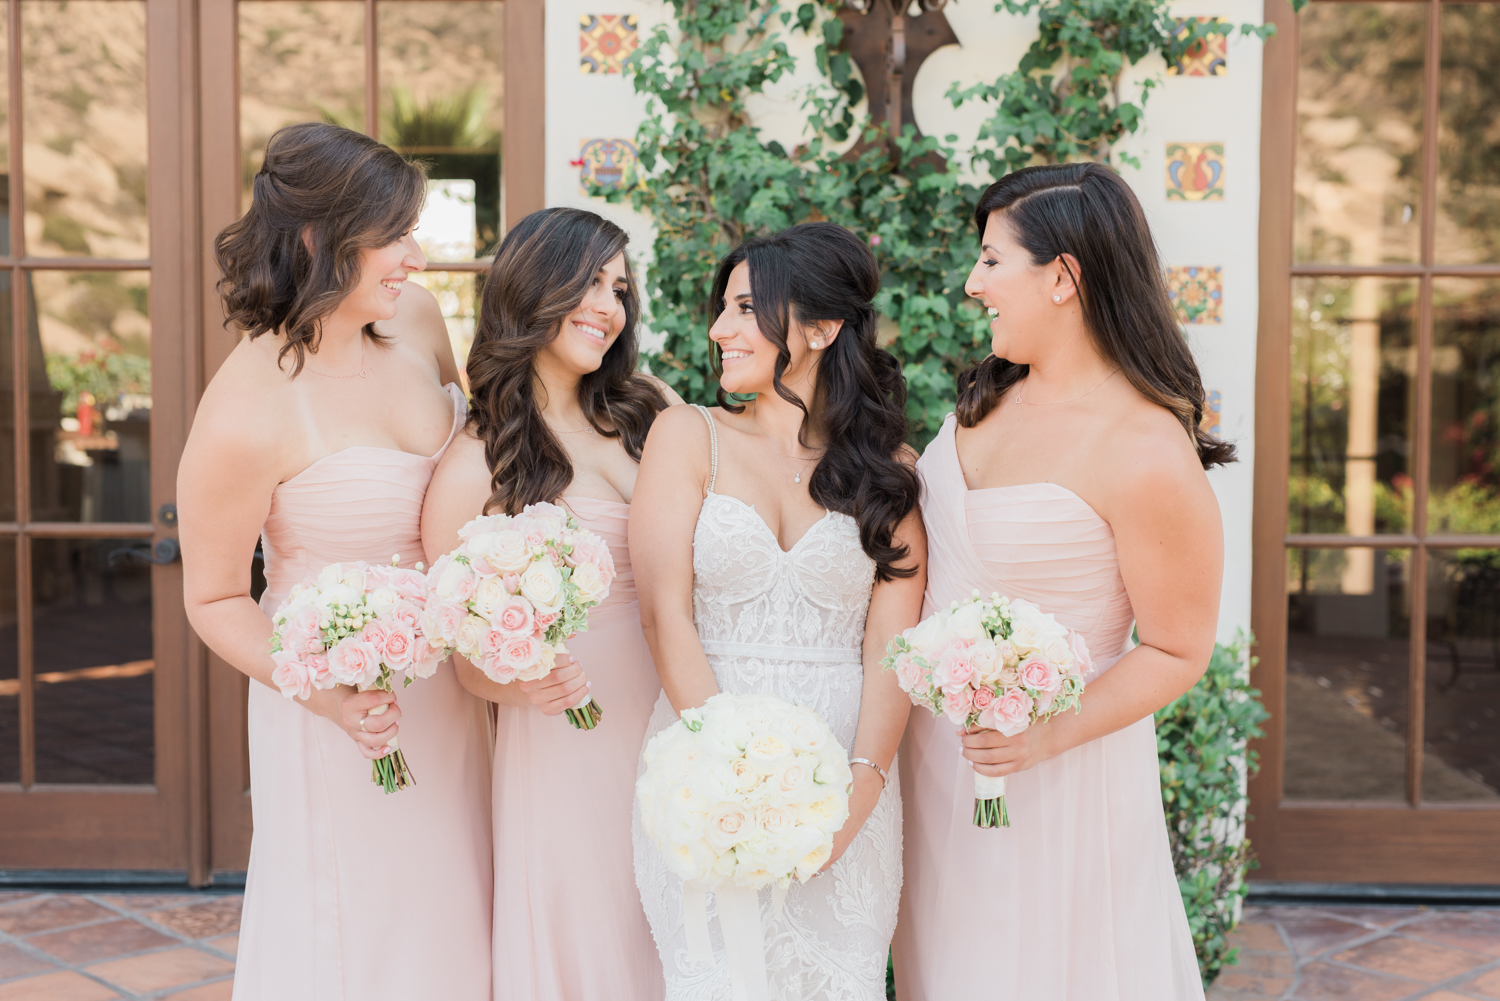 azer&michelle_hummingbird_nest_ranch_wedding_fine_art_photographer_los_angeles-14.jpg